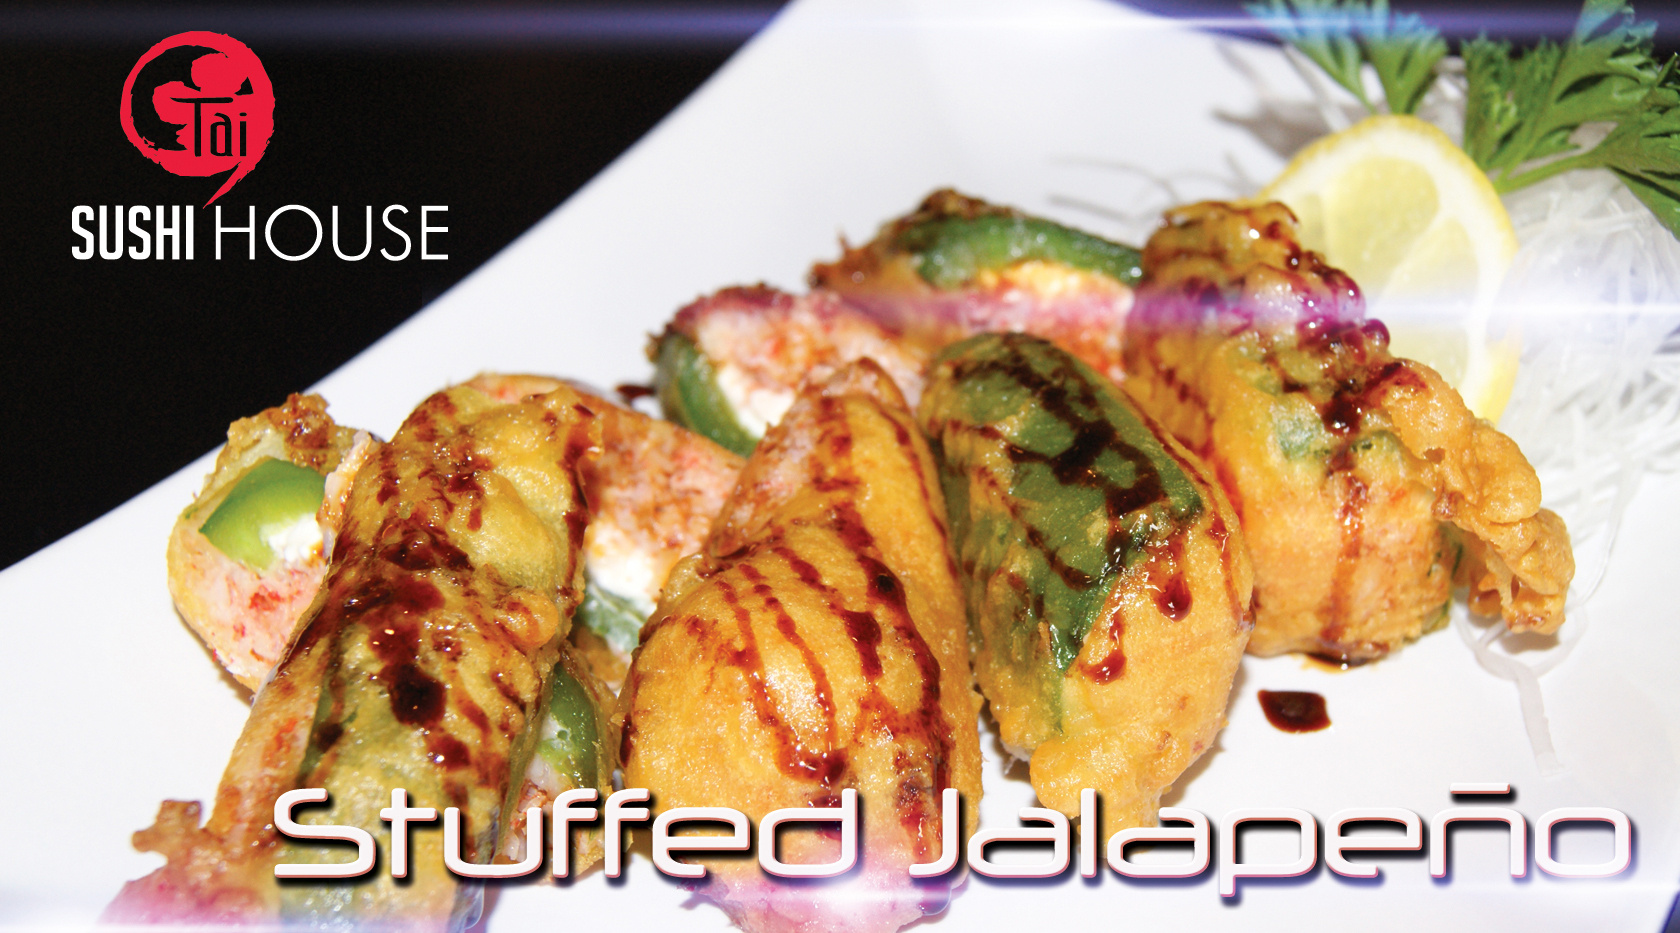 Stuffed Jalapeno